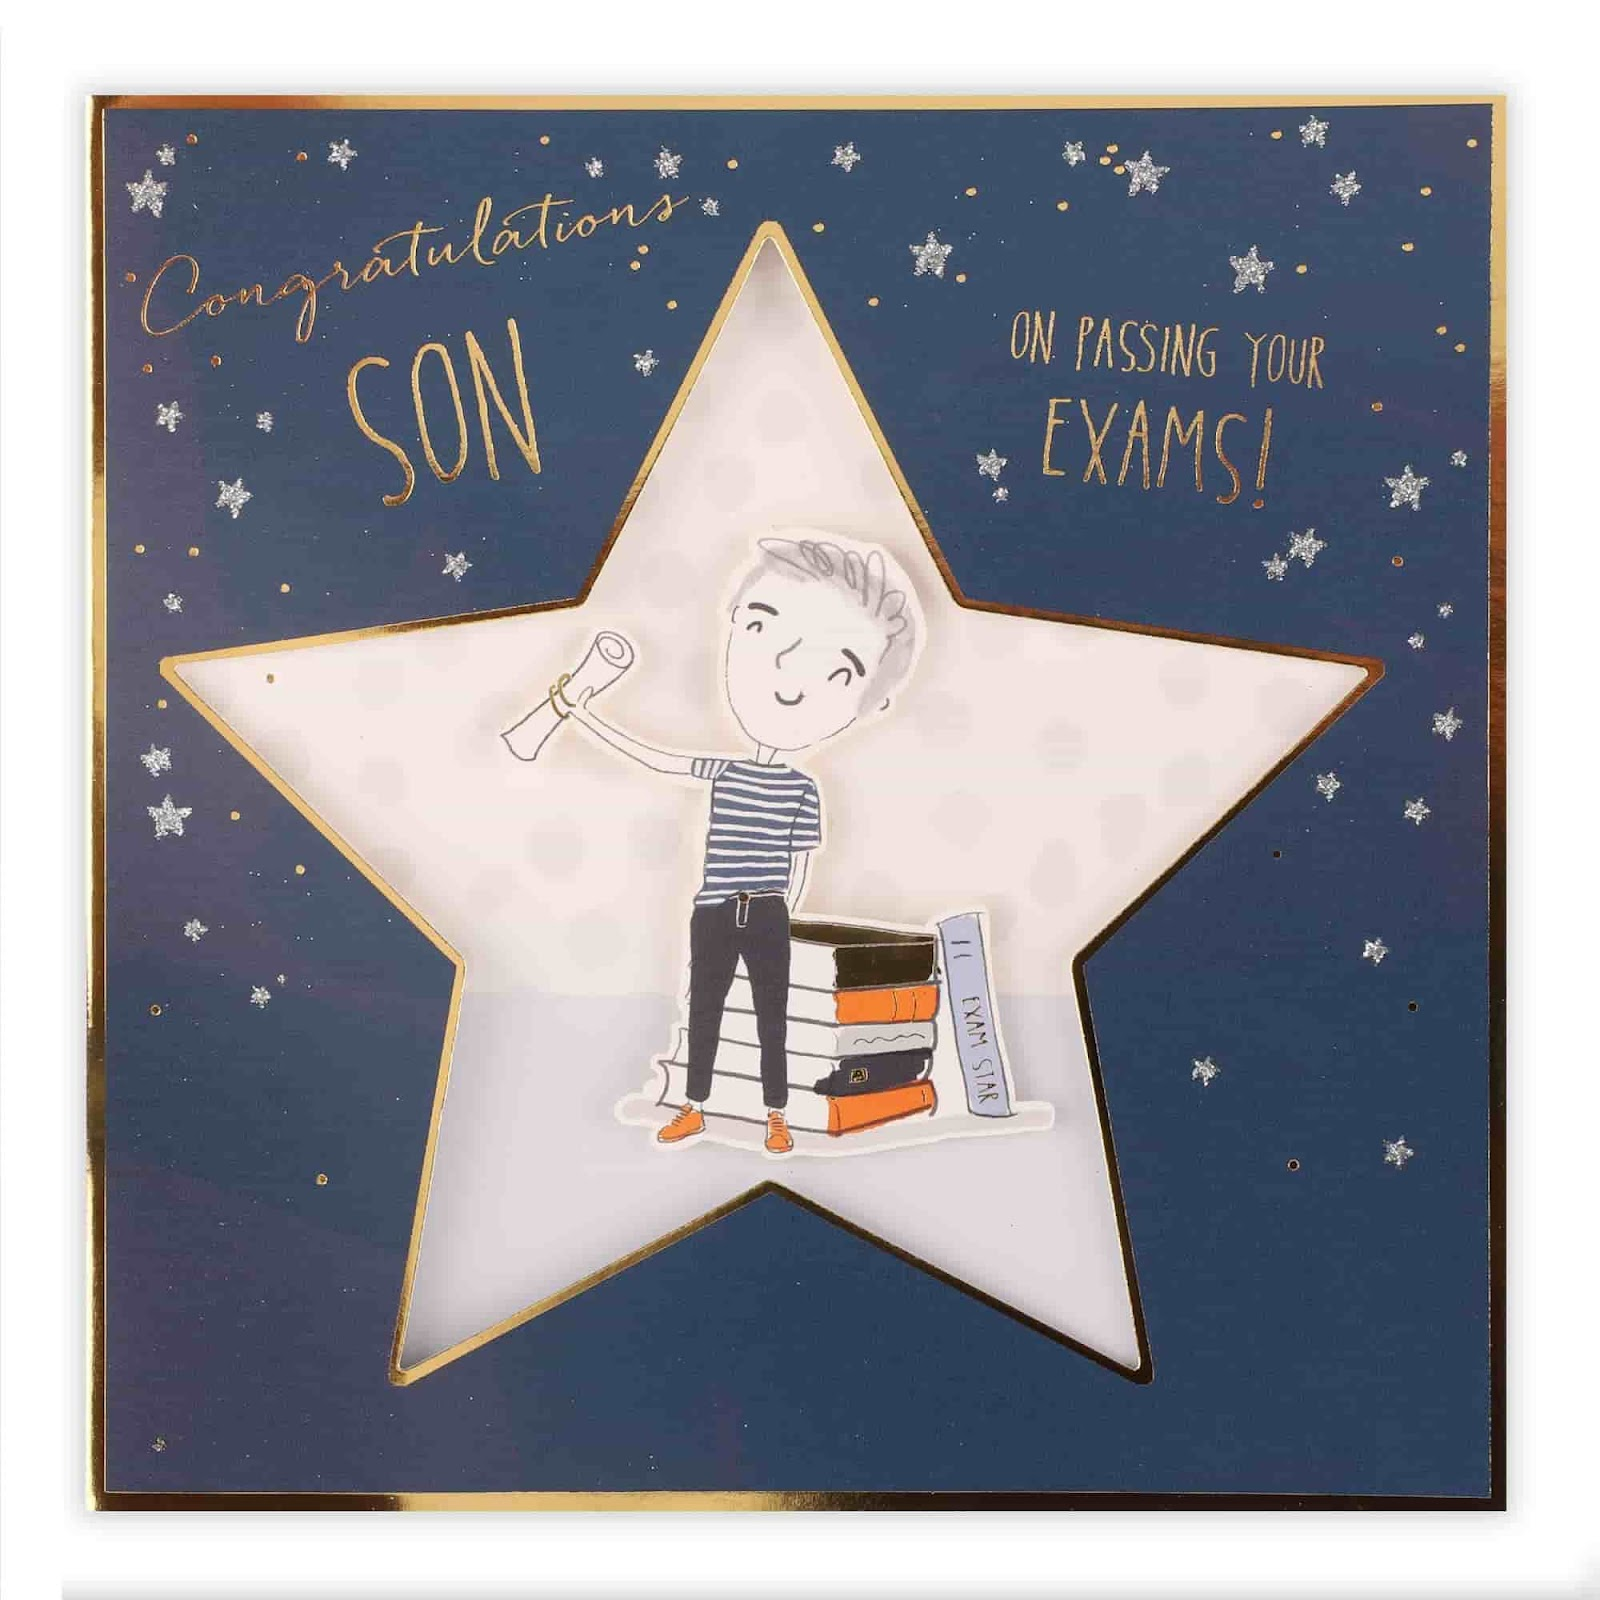 Best graduation gifts; Clintons' congrats passing exams son card